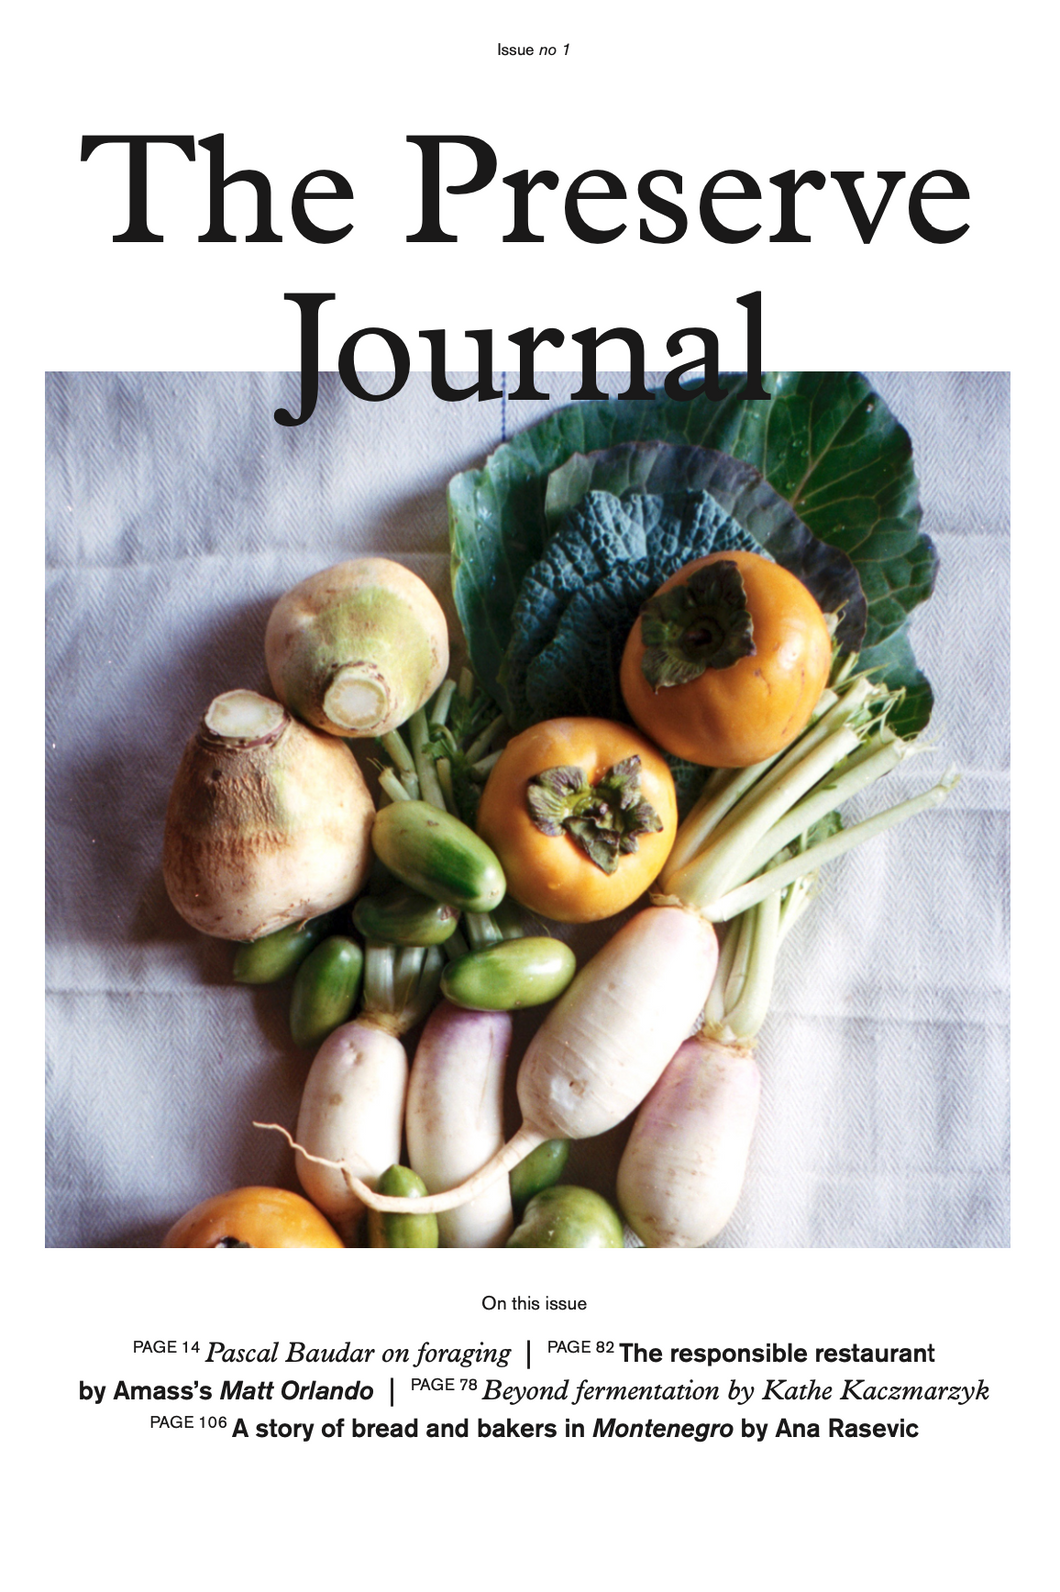 The Preserve Journal Issue no 1